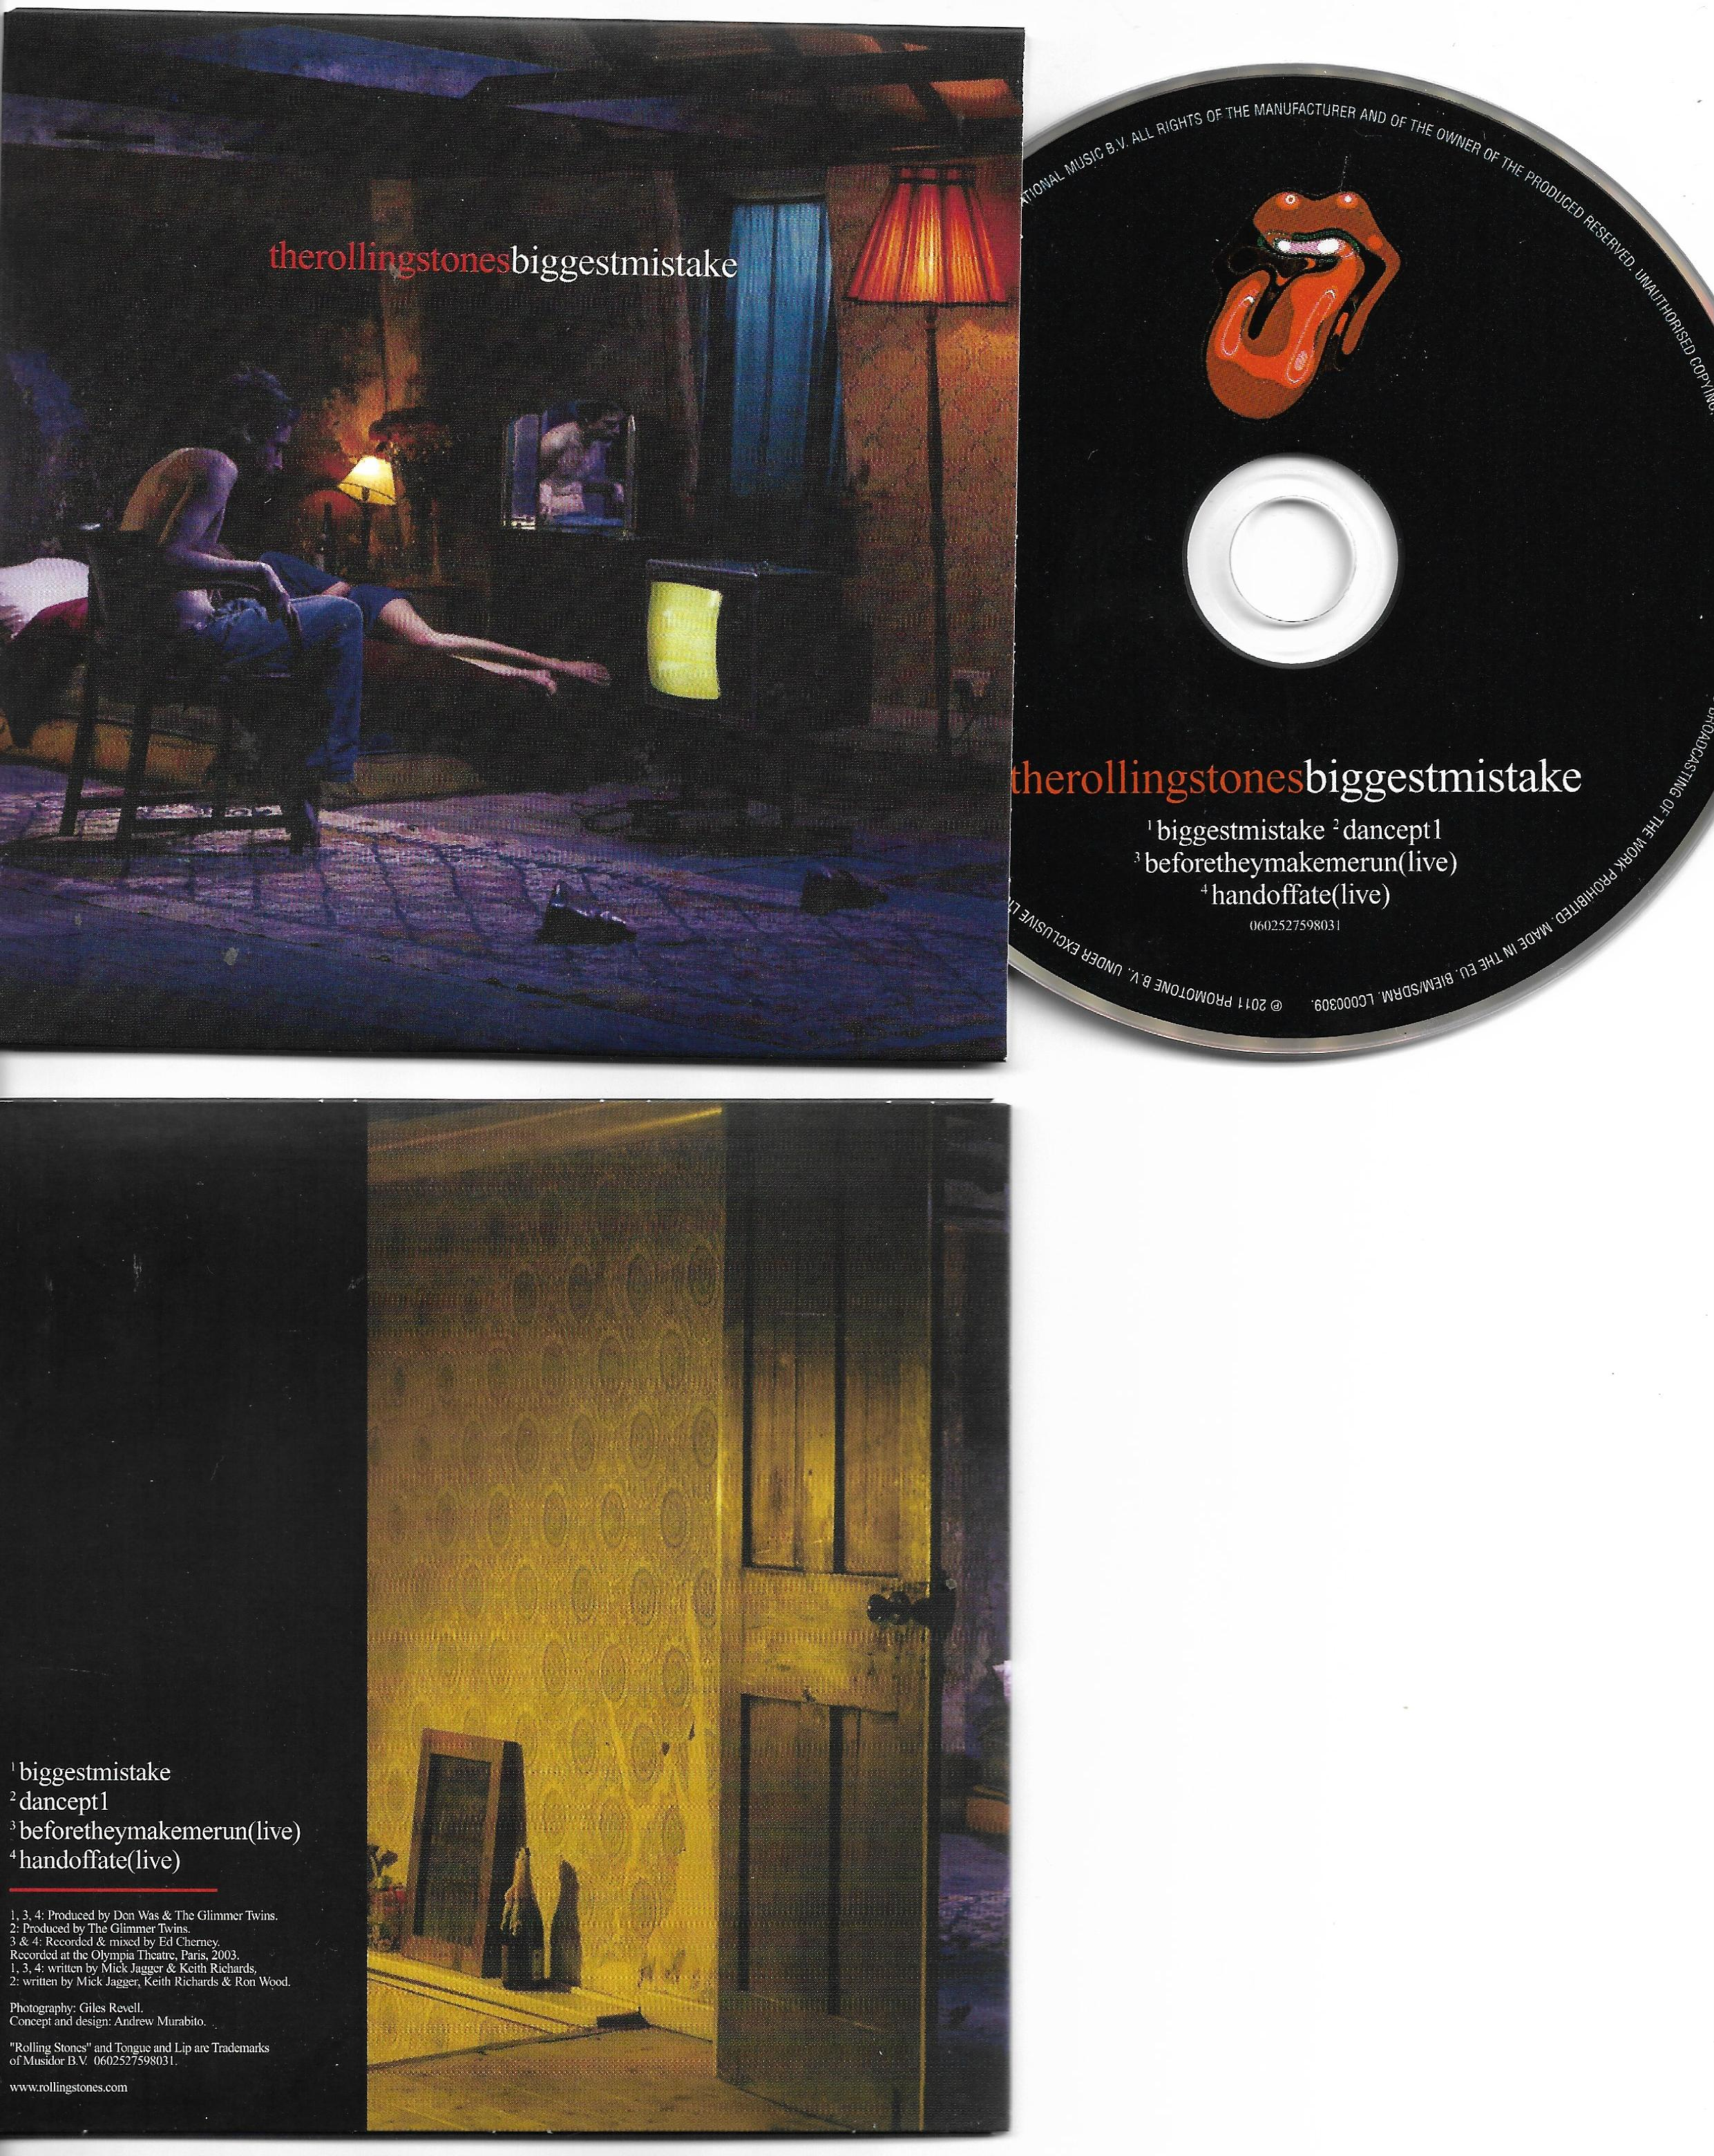 THE ROLLING STONES - Biggest mistake 4-Track CARD SLEEVE - CD single